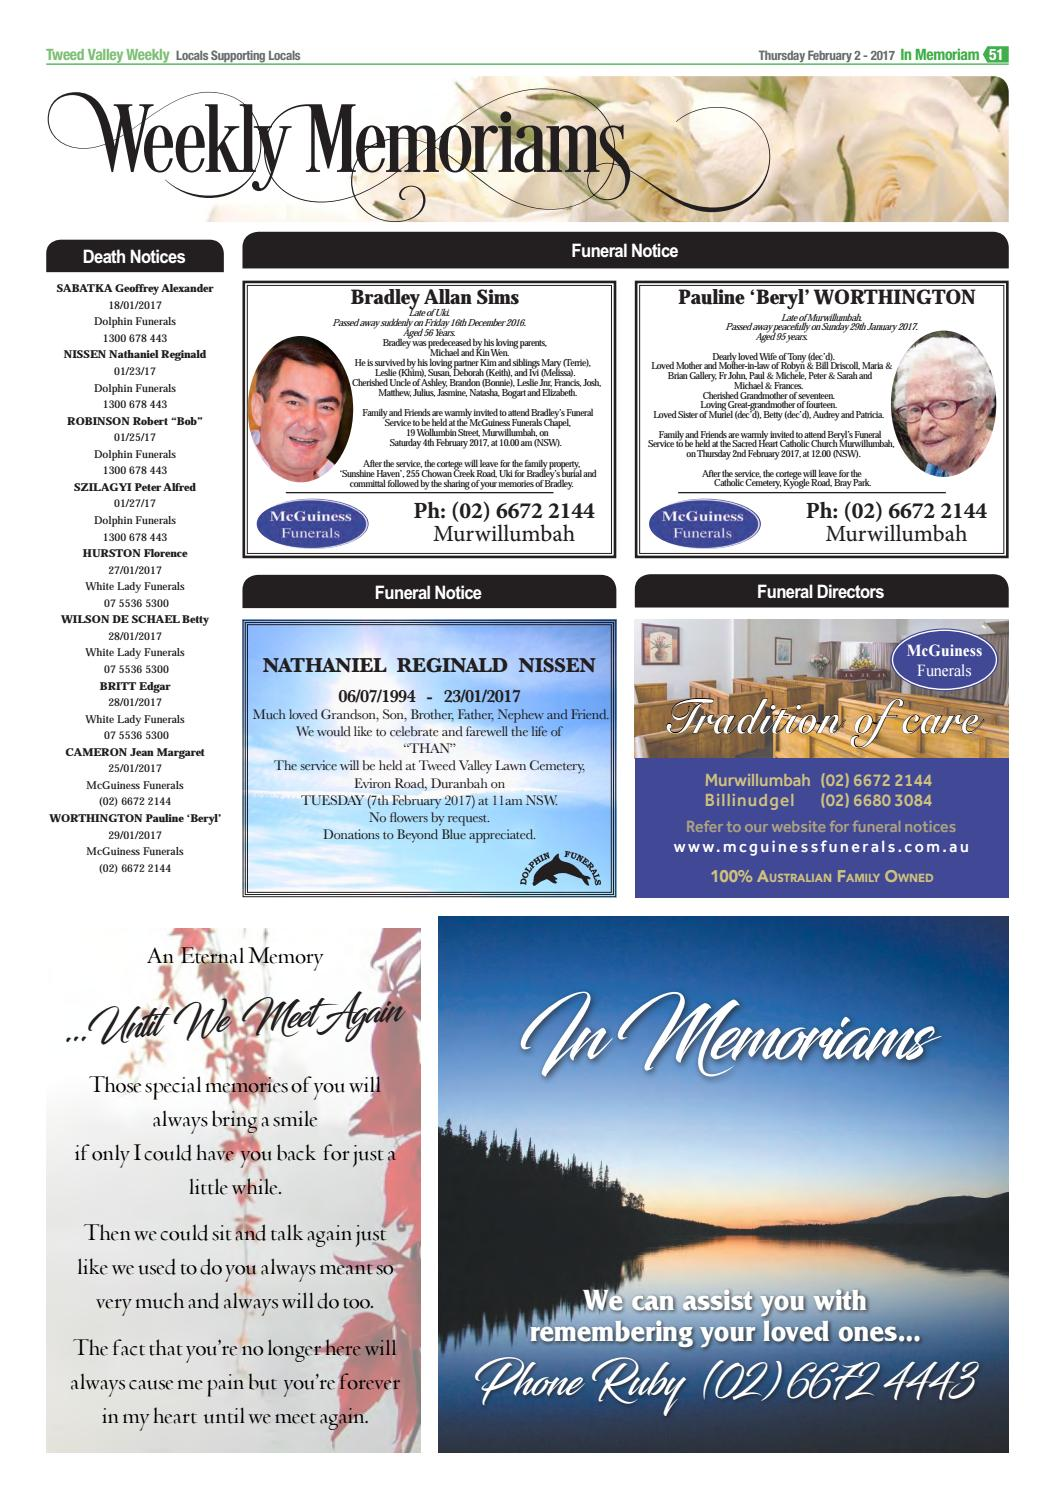 Tweed Valley Weekly February 2, 2016 by Tweed Valley Weekly - issuu